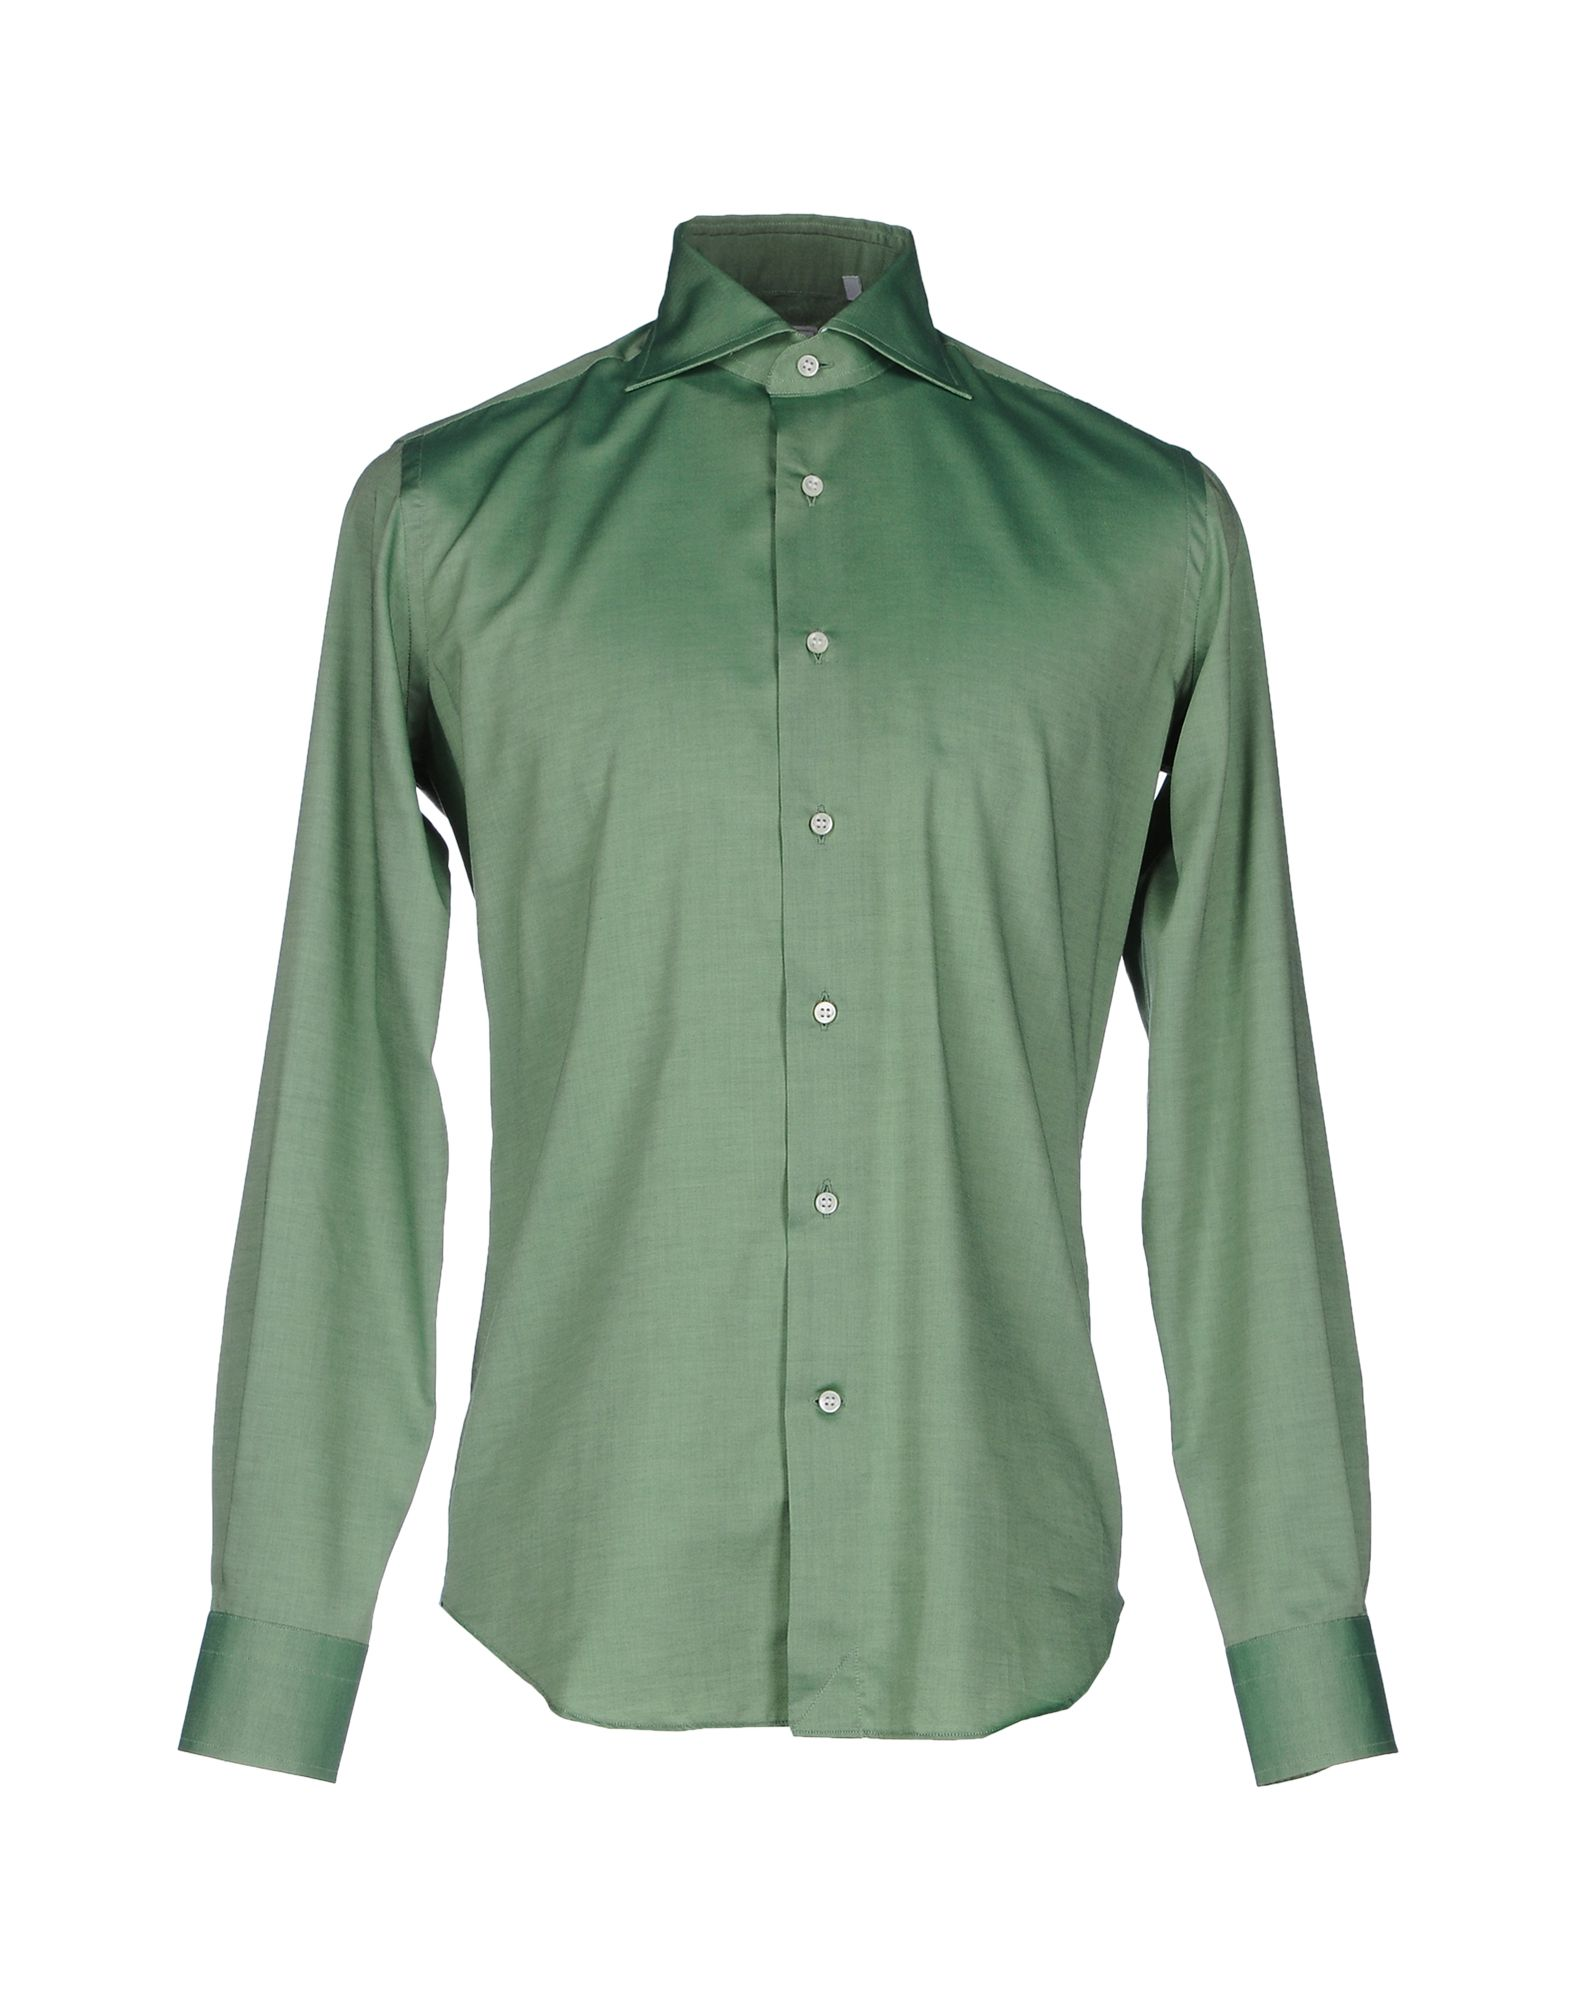 LEXINGTON Solid Color Shirt in Green